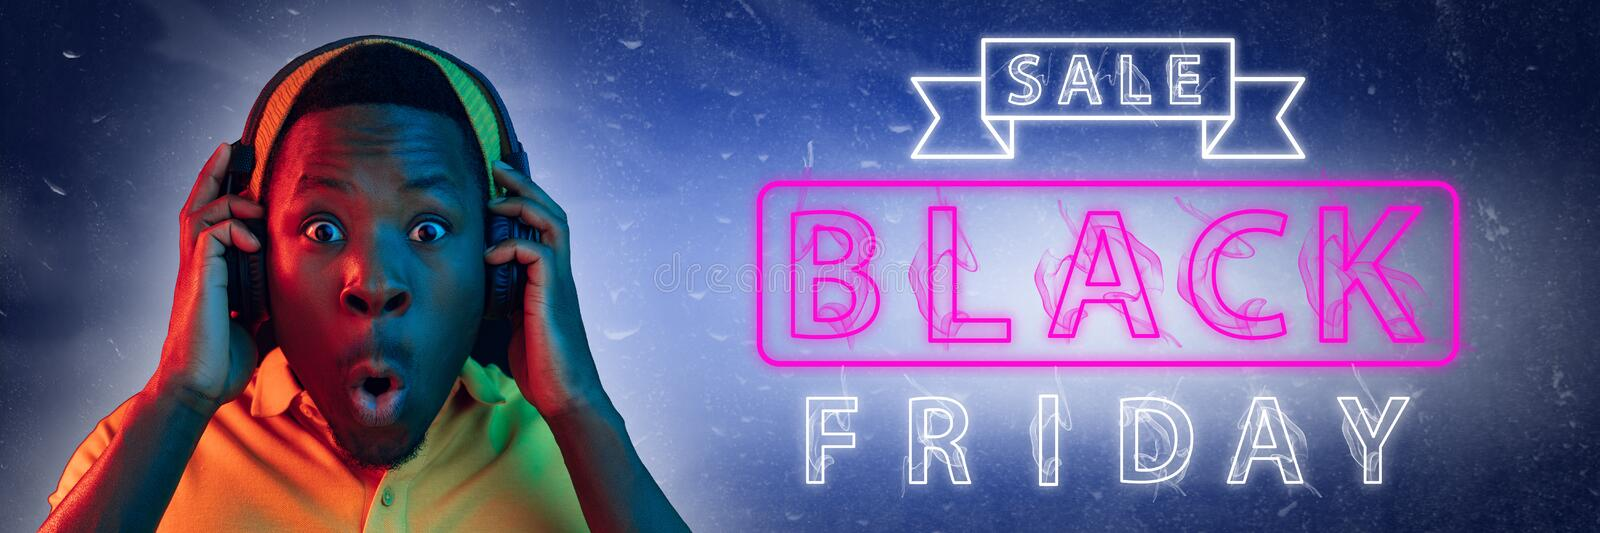 Black friday, sales. Modern design. Contemporary art collage. Black friday, sales, purchases concept. Neon lighted letters on gradient background. Astonished royalty free stock photos